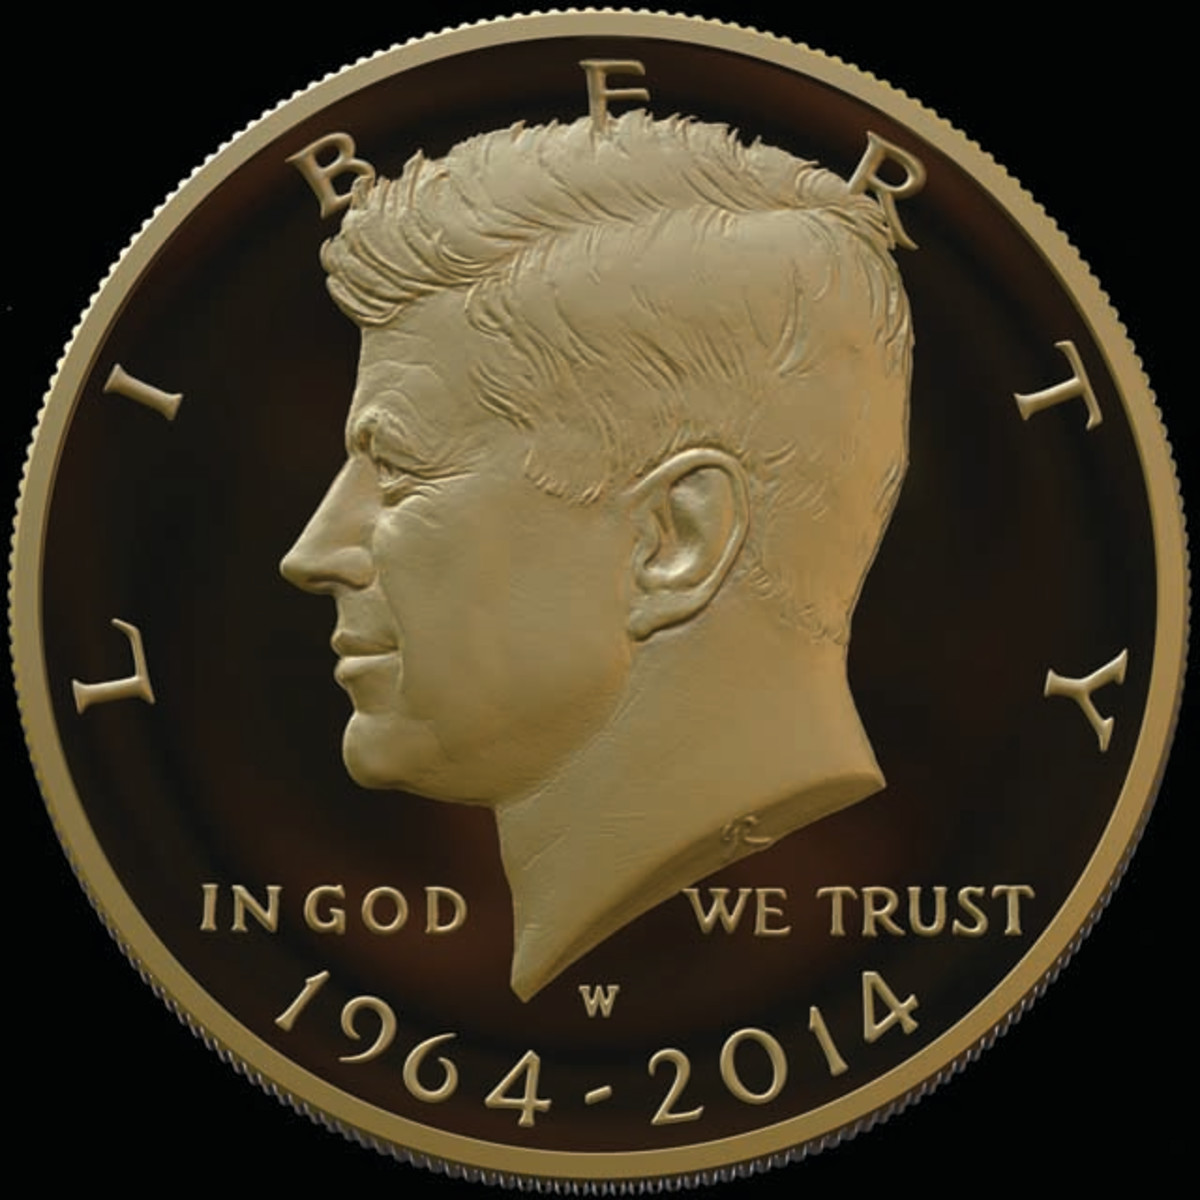 Obverse to the 1964-2014 gold Kennedy half dollar to be released at the ANA World's Fair of Money